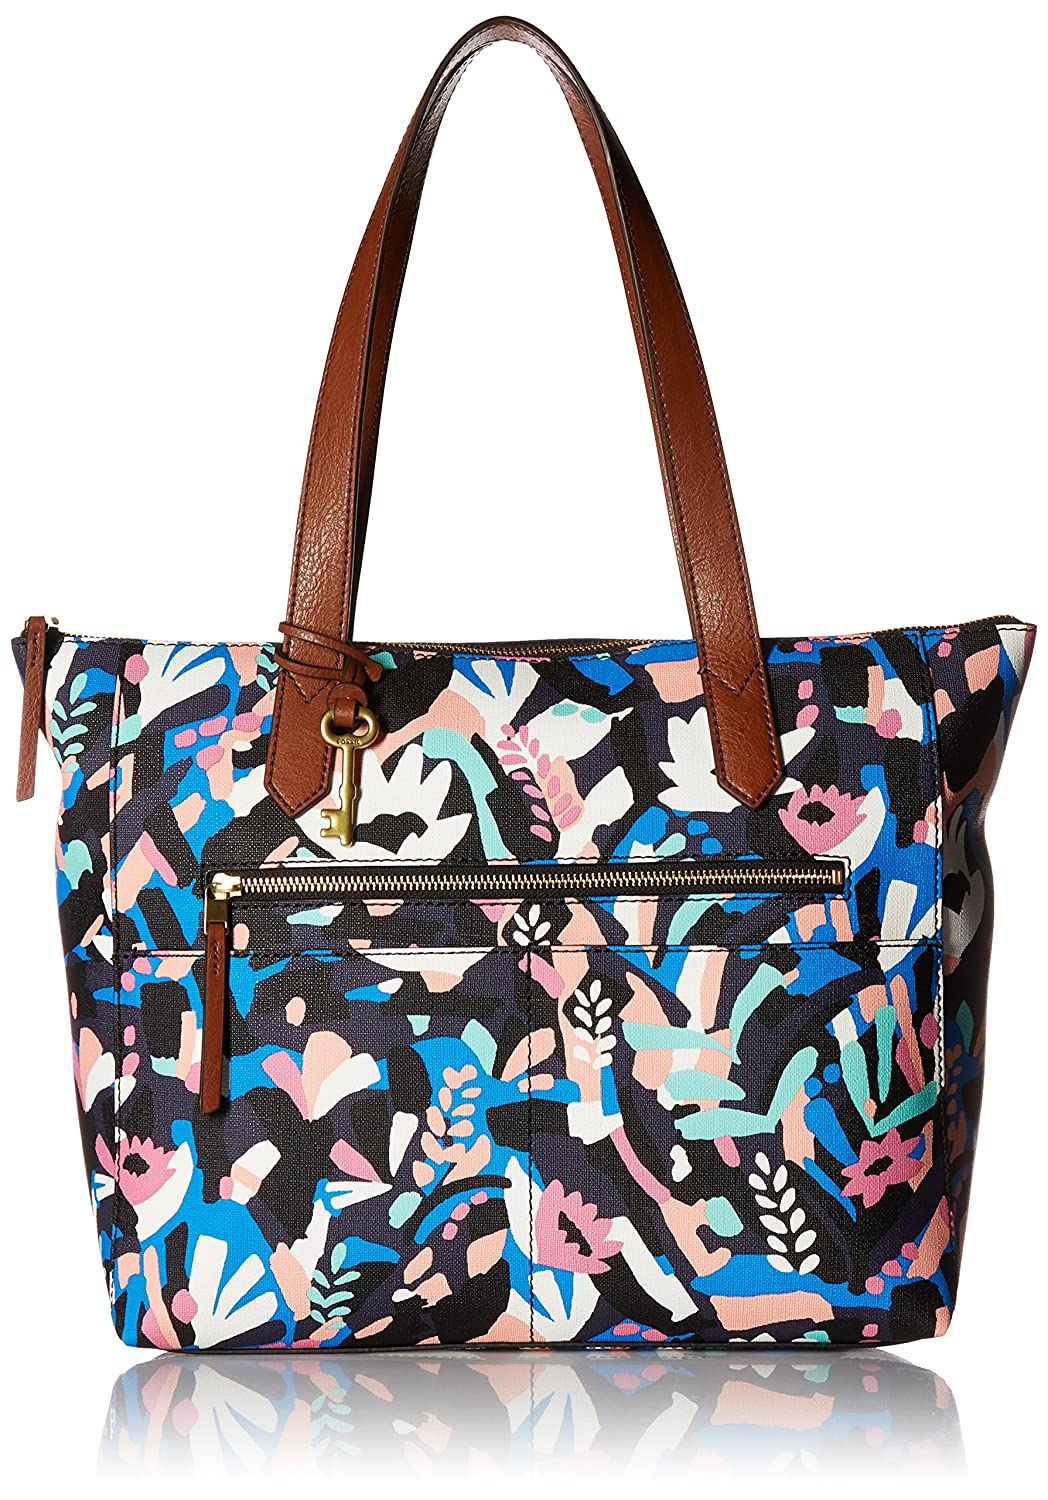 Fossil レディース Fiona EW Tote Black Floral One Size ブラック花柄 B07822VT3T